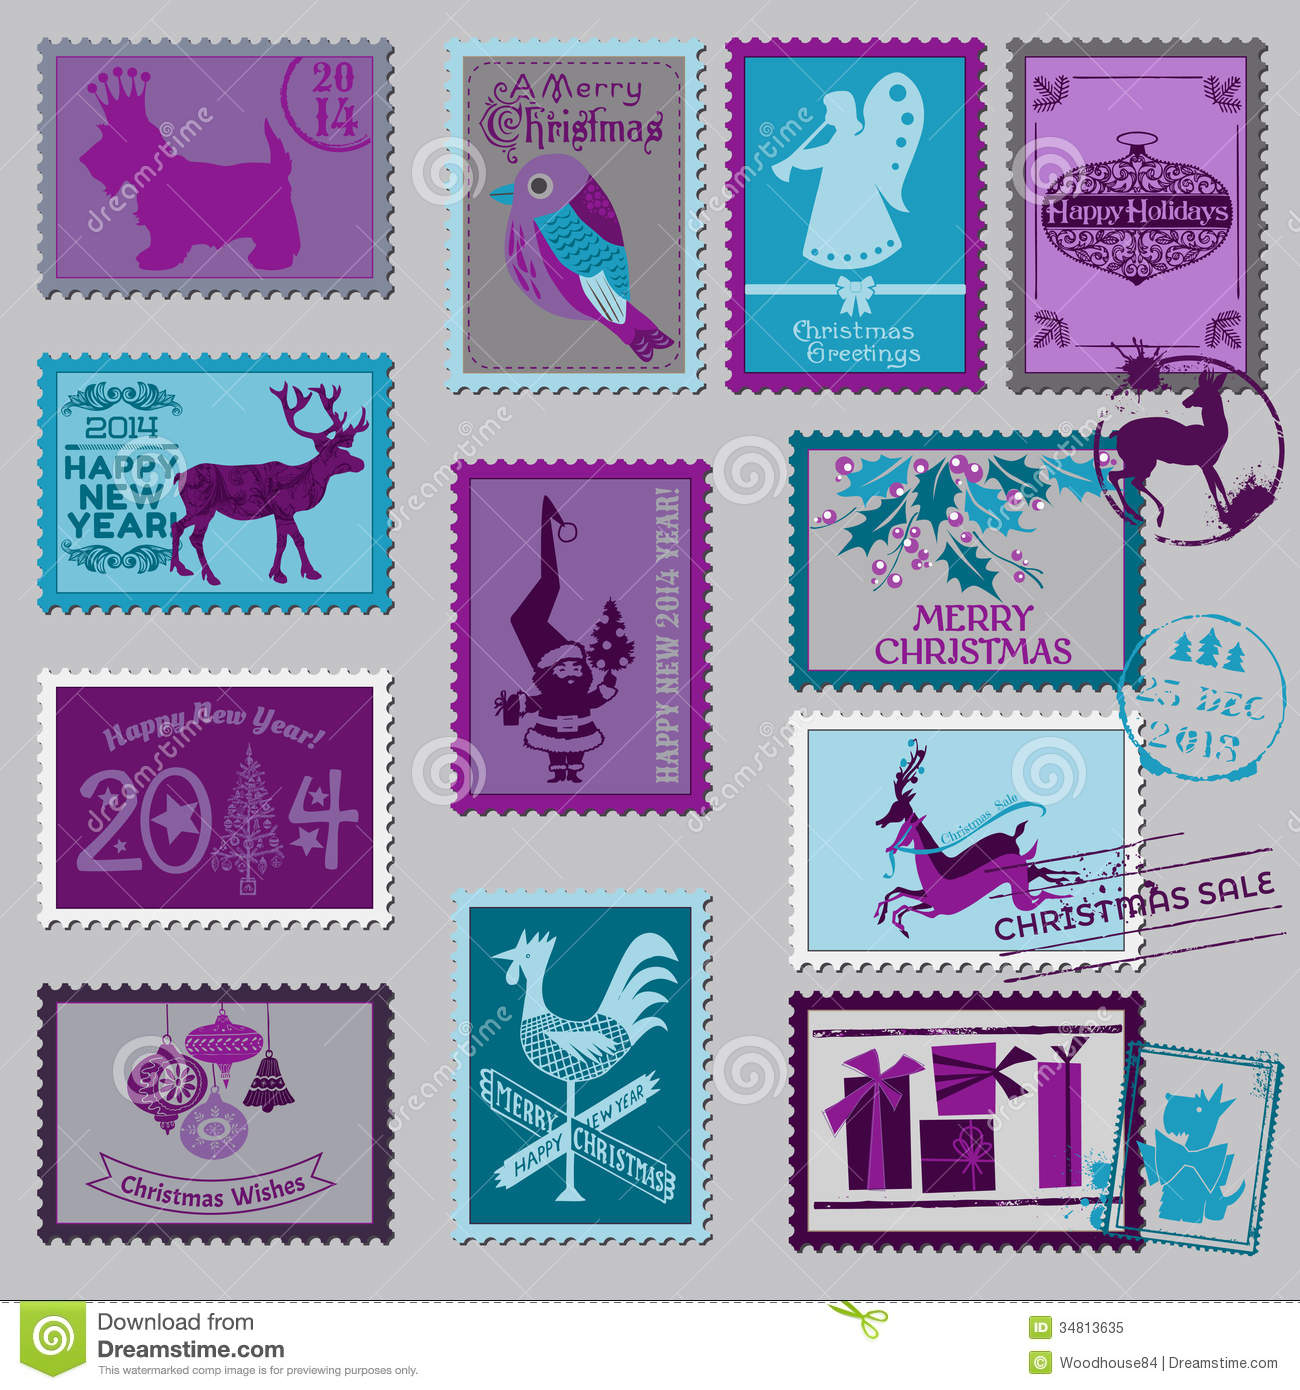 Christmas Postage Stamps Royalty Free Stock Photo Image 34813635